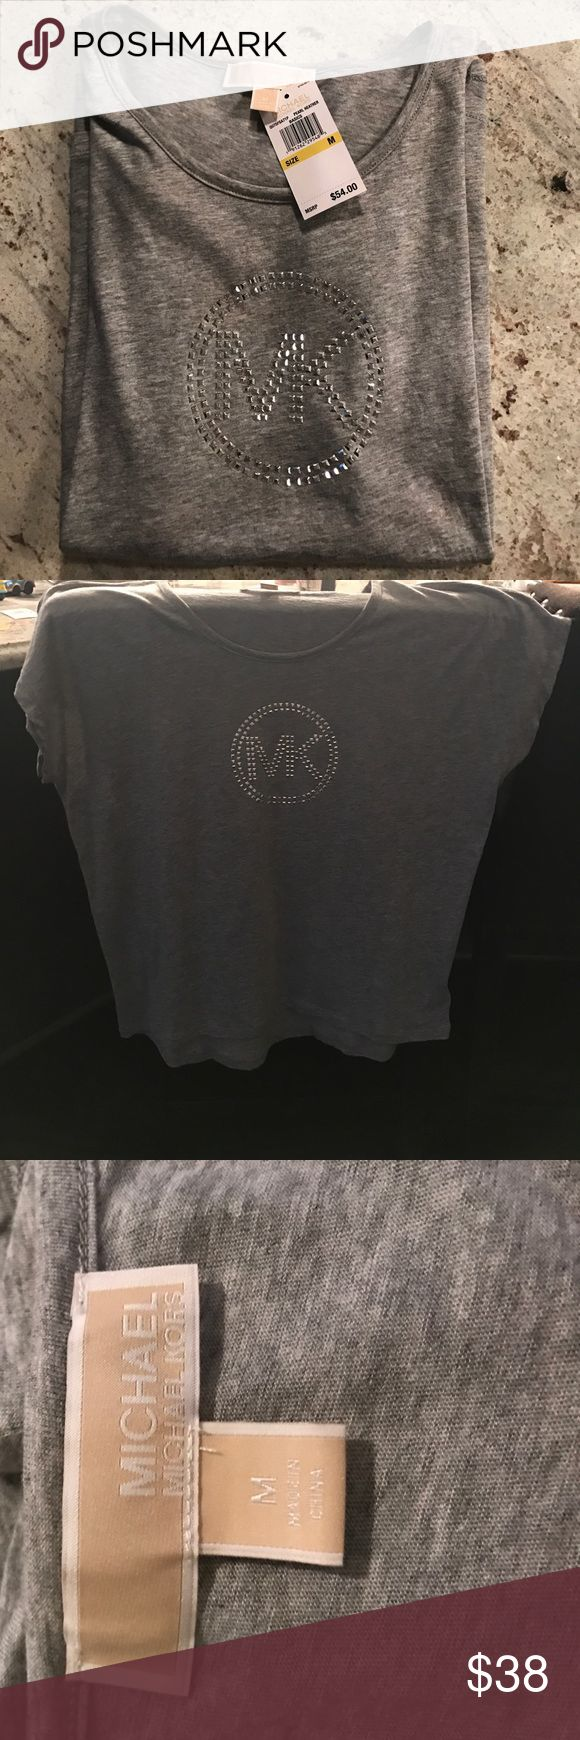 New Michael Kors Gray Tshirt!! Very cute brand new Michael Kors tshirt! Took tag off only to wear and it was too big - can't find receipt to return so selling! Super soft material and lightweight!! Medium. MICHAEL Michael Kors Tops Tees - Short Sleeve